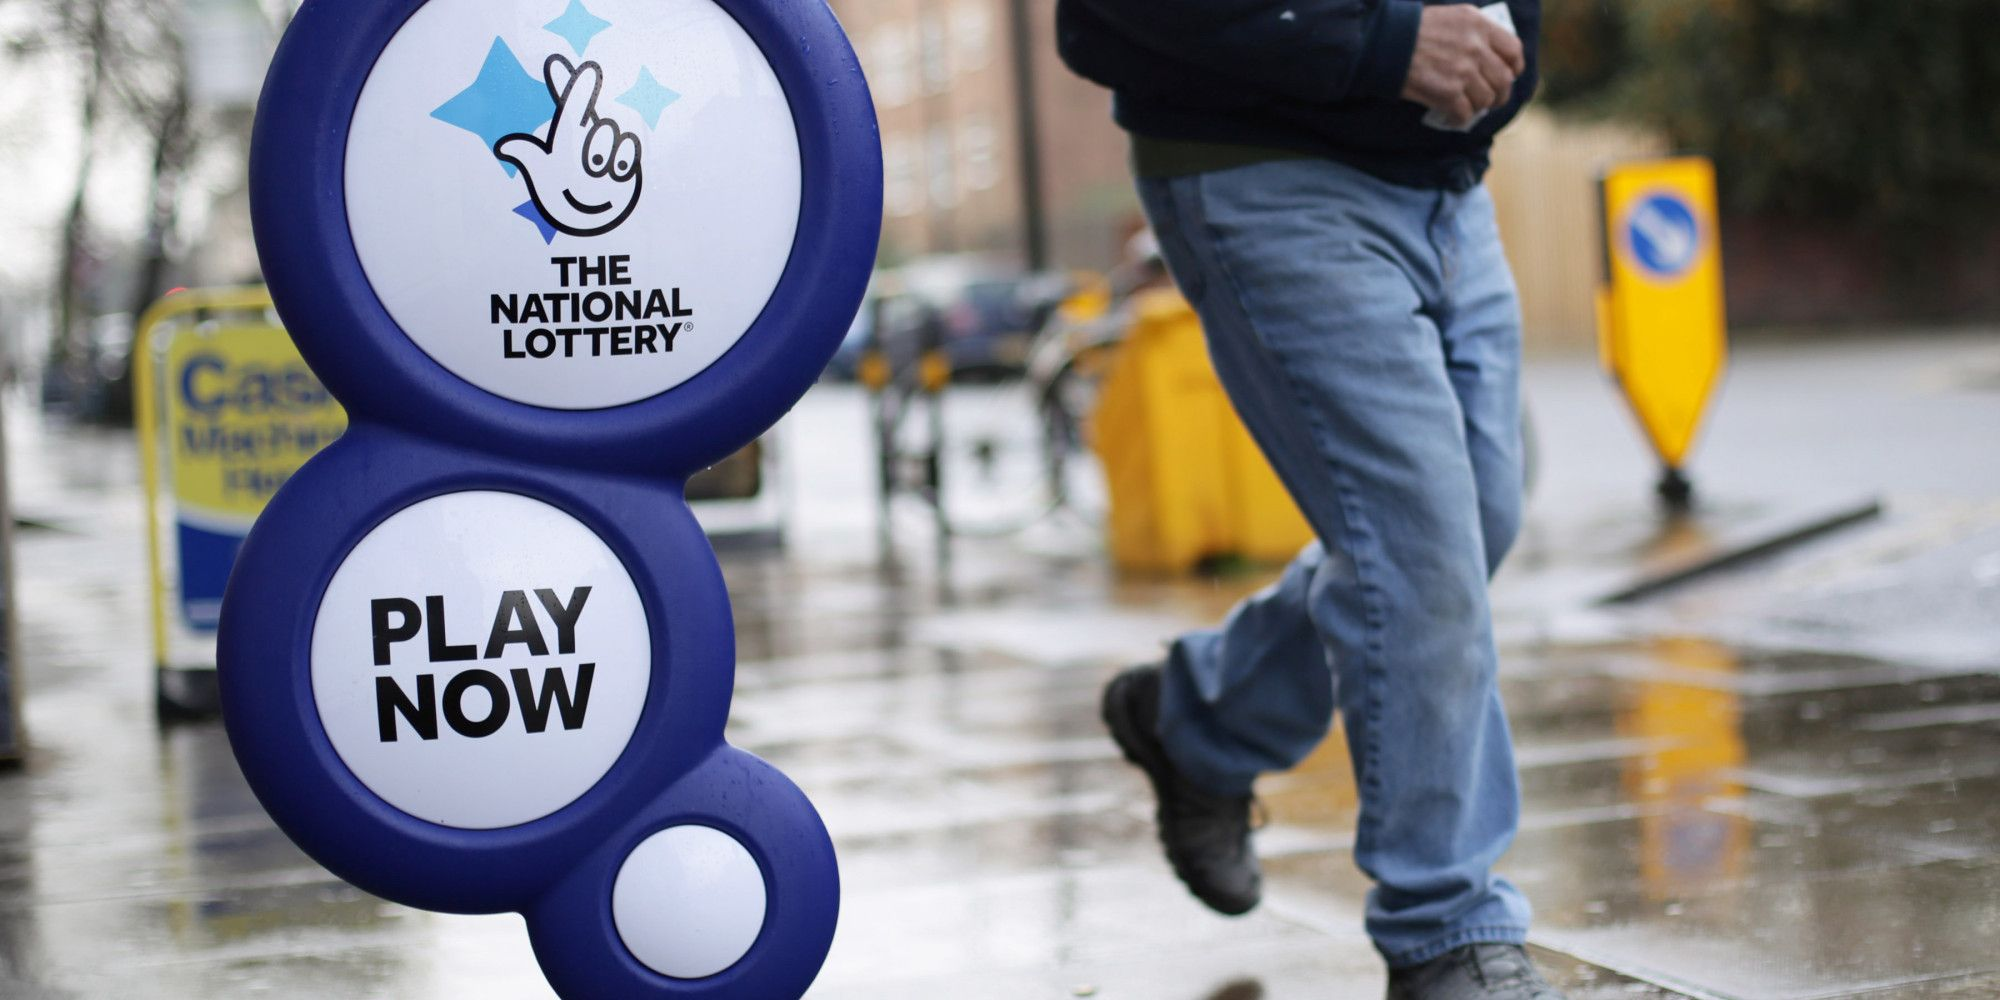 The way you play the lottery online through the web site appears to be easy and also the info needed to enter the attracts is evident to envision. The time until the next draw is in obvious sight and clicks down in real time. The numbers you have selected are displayed and it appears straightforward to form relevancy your winnings and cash staked.